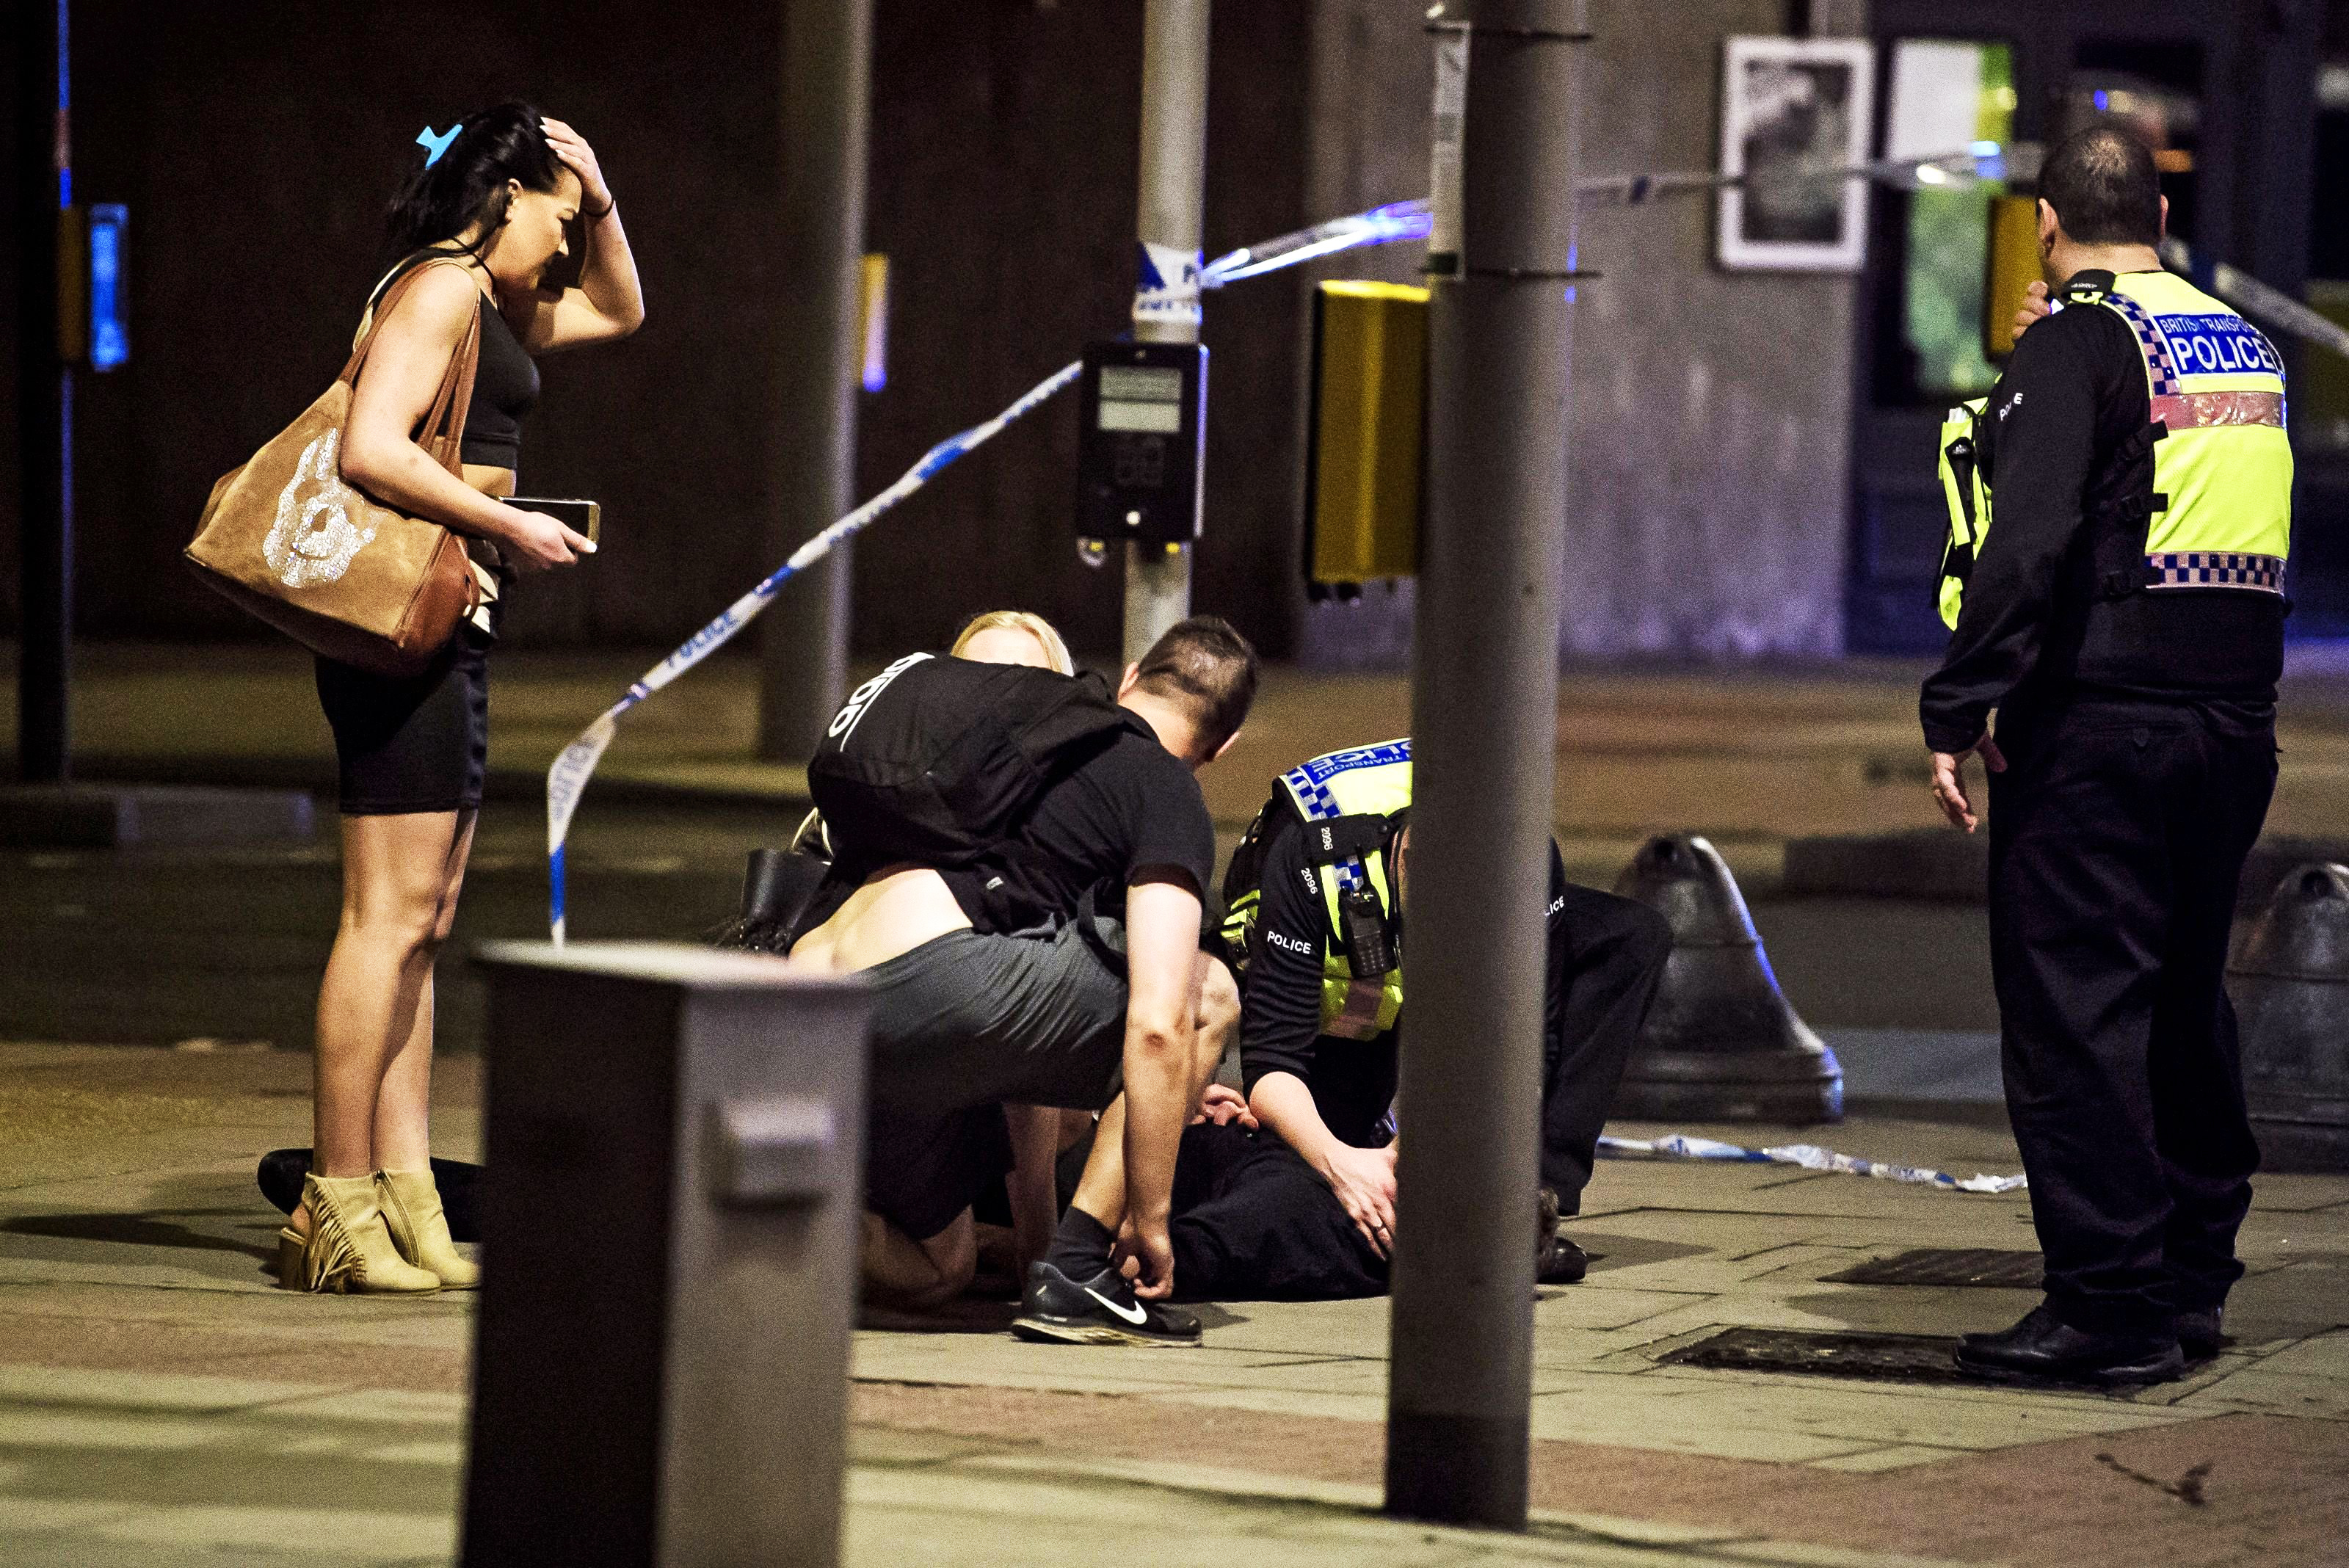 A man being treated near London Bridge after reports of an incident involving a vehicle and pedestrians, on June 3, 2017.